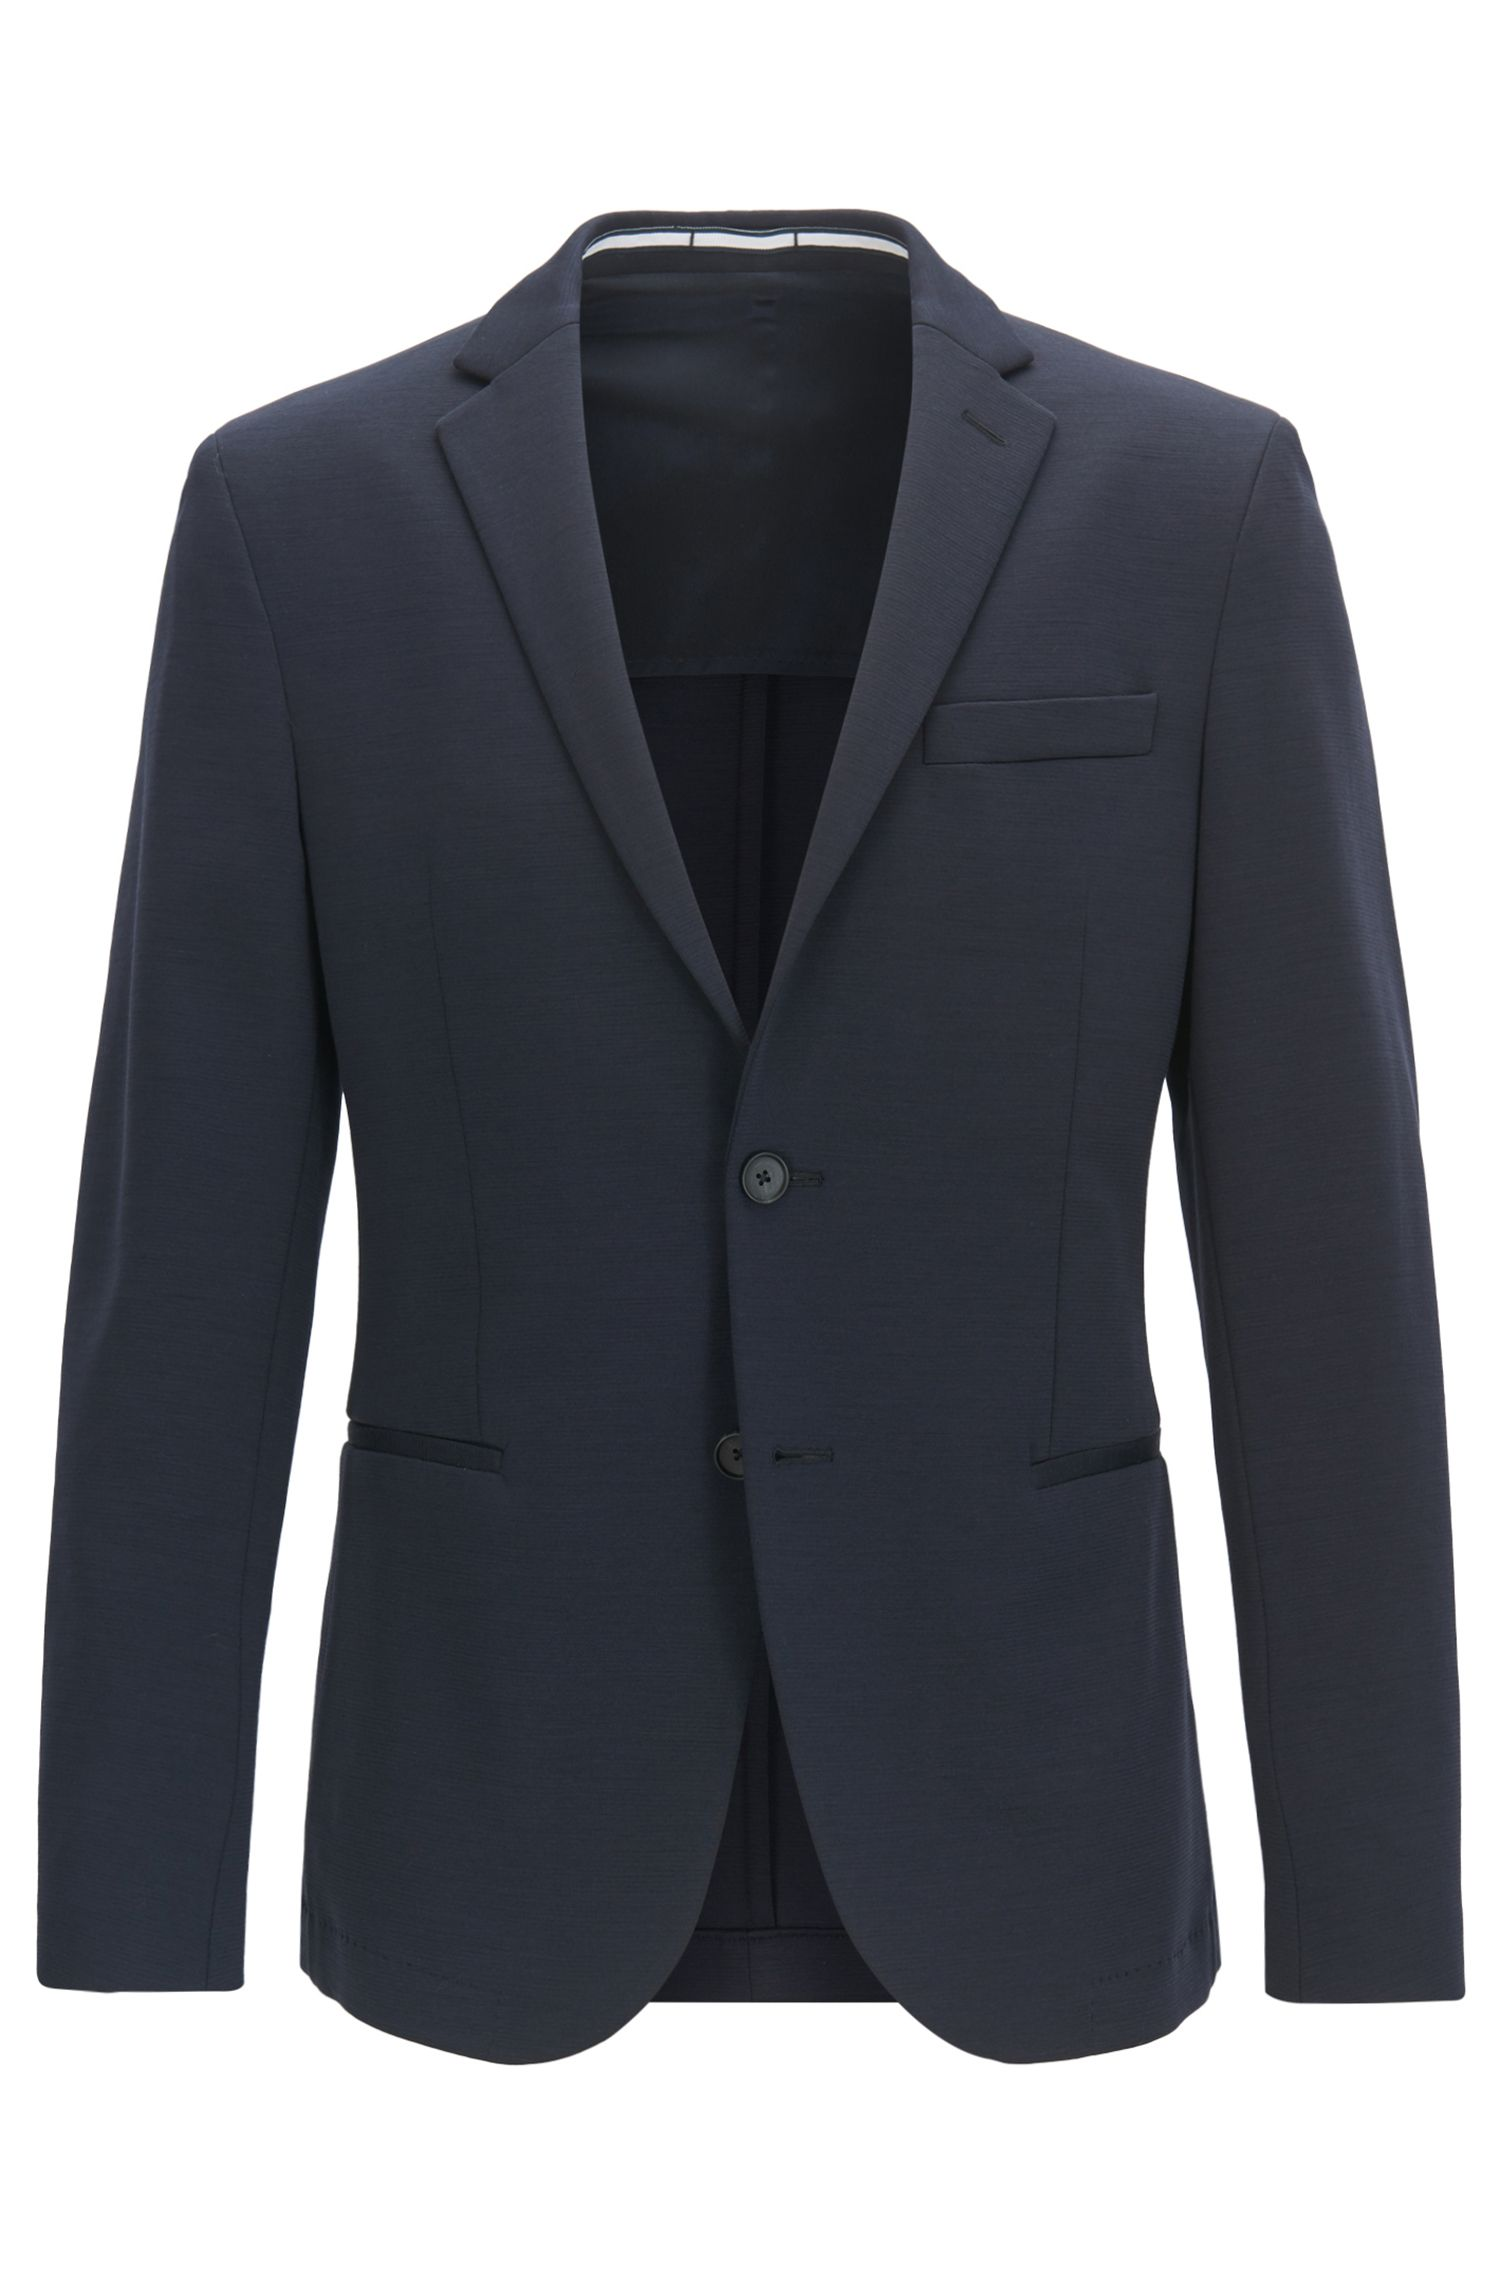 Stretch Wool Blend Sport Coat, Slim Fit | Norwin J, Dark Blue